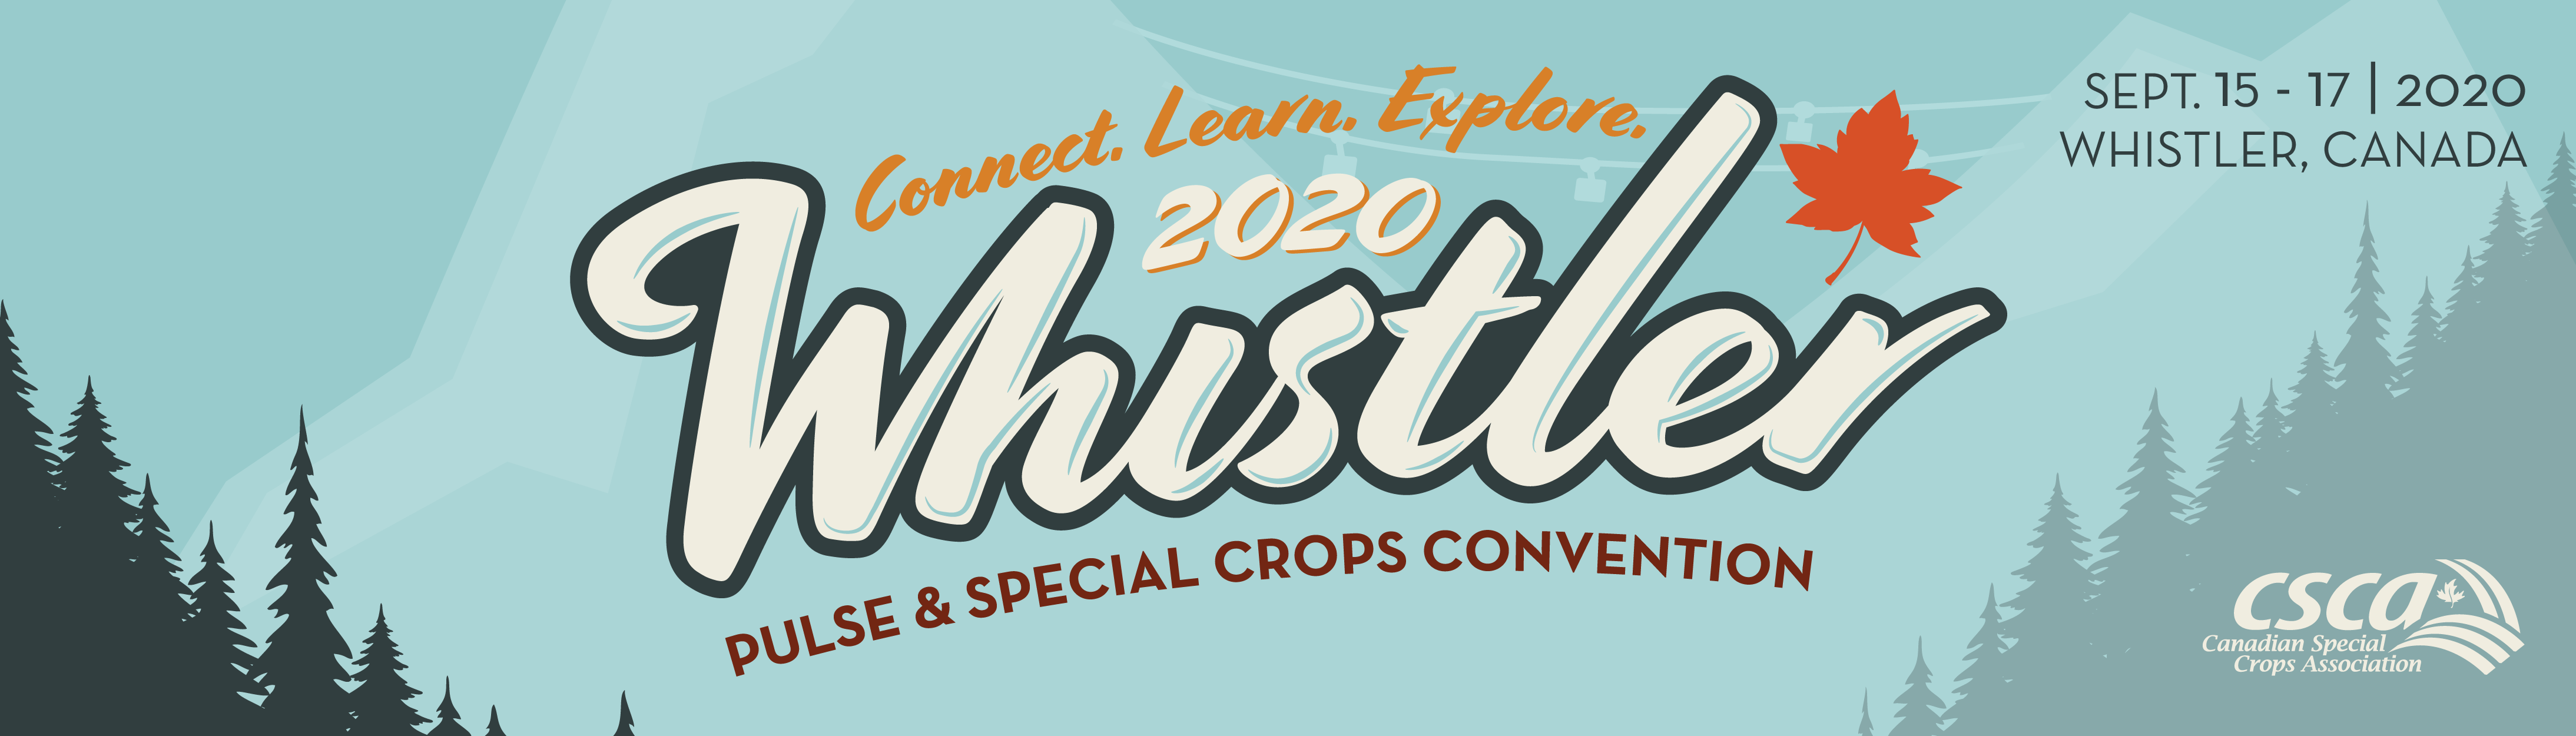 Pulse & Special Crops Convention 2020 Sponsorships